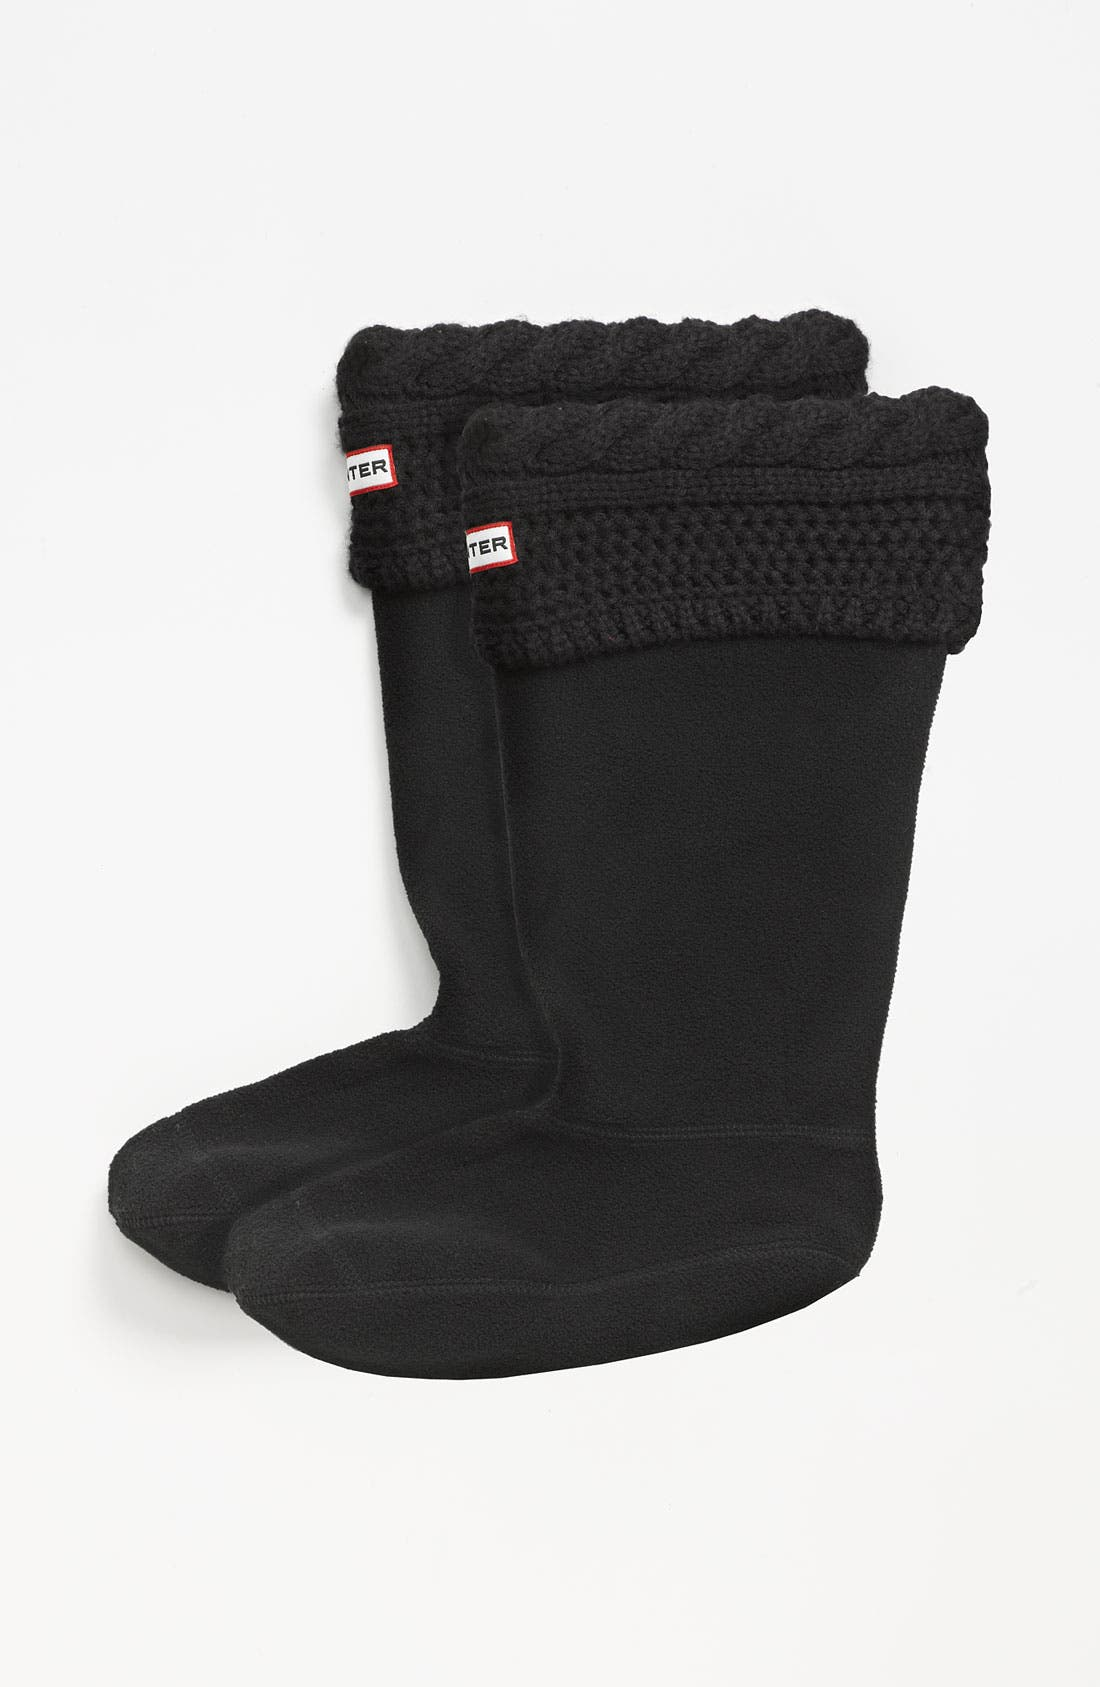 'Moss Cable' Tall Cuff Welly Socks,                             Main thumbnail 1, color,                             Black